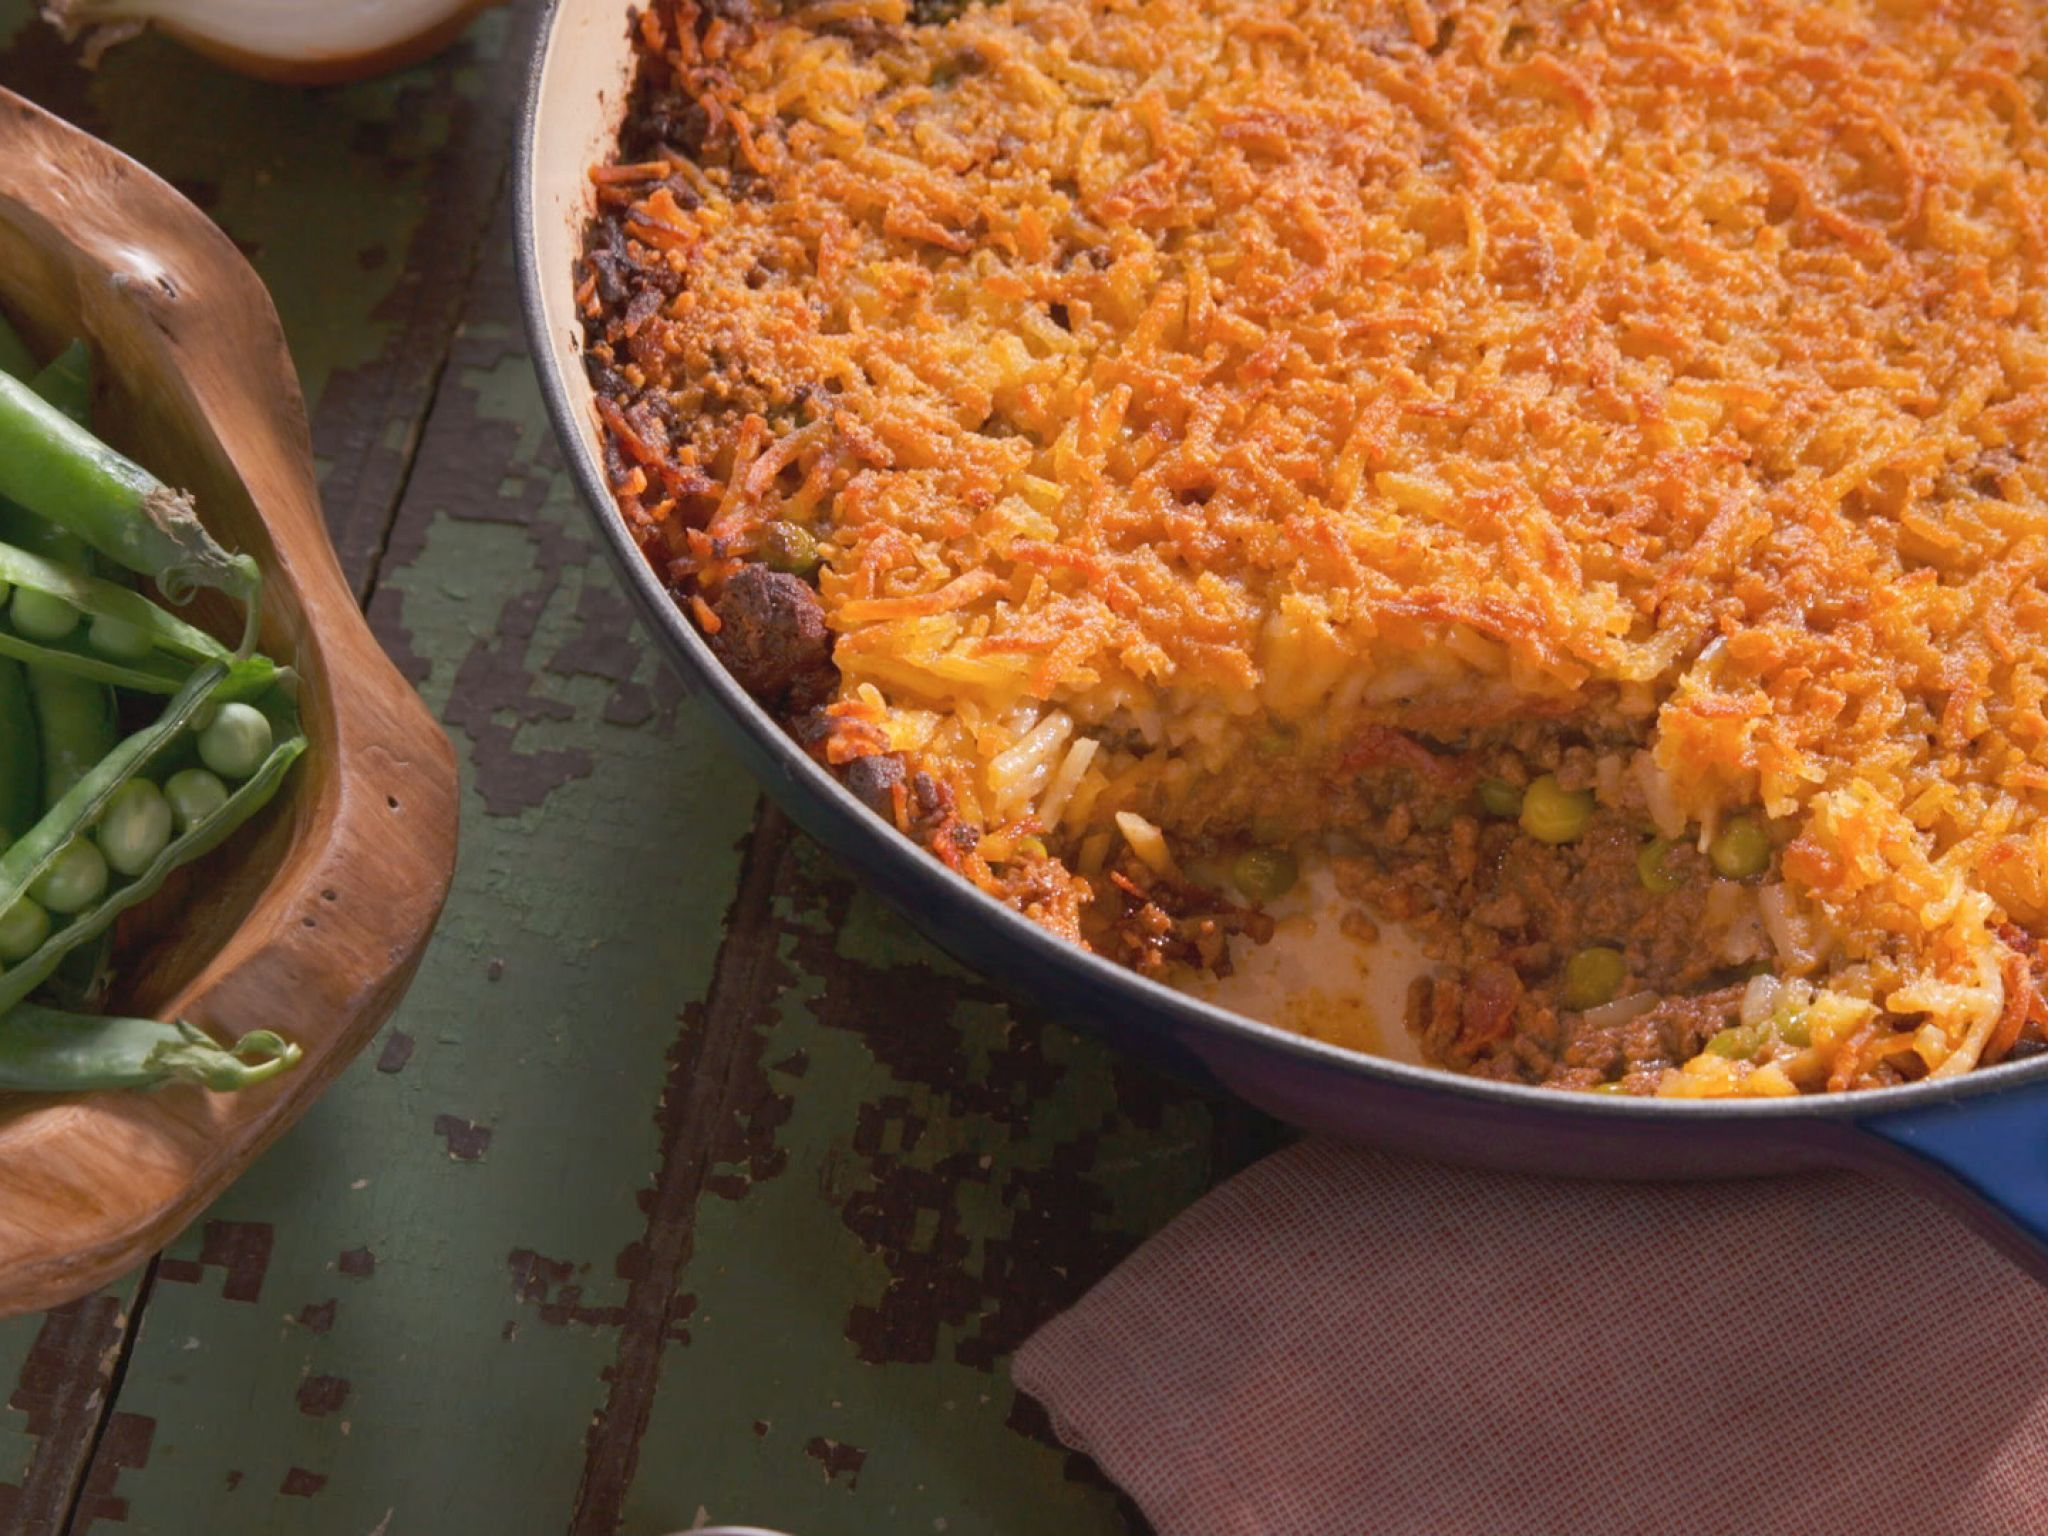 Shepherd's Pie with Tater Tot Topping | Recipe in 2020 ...